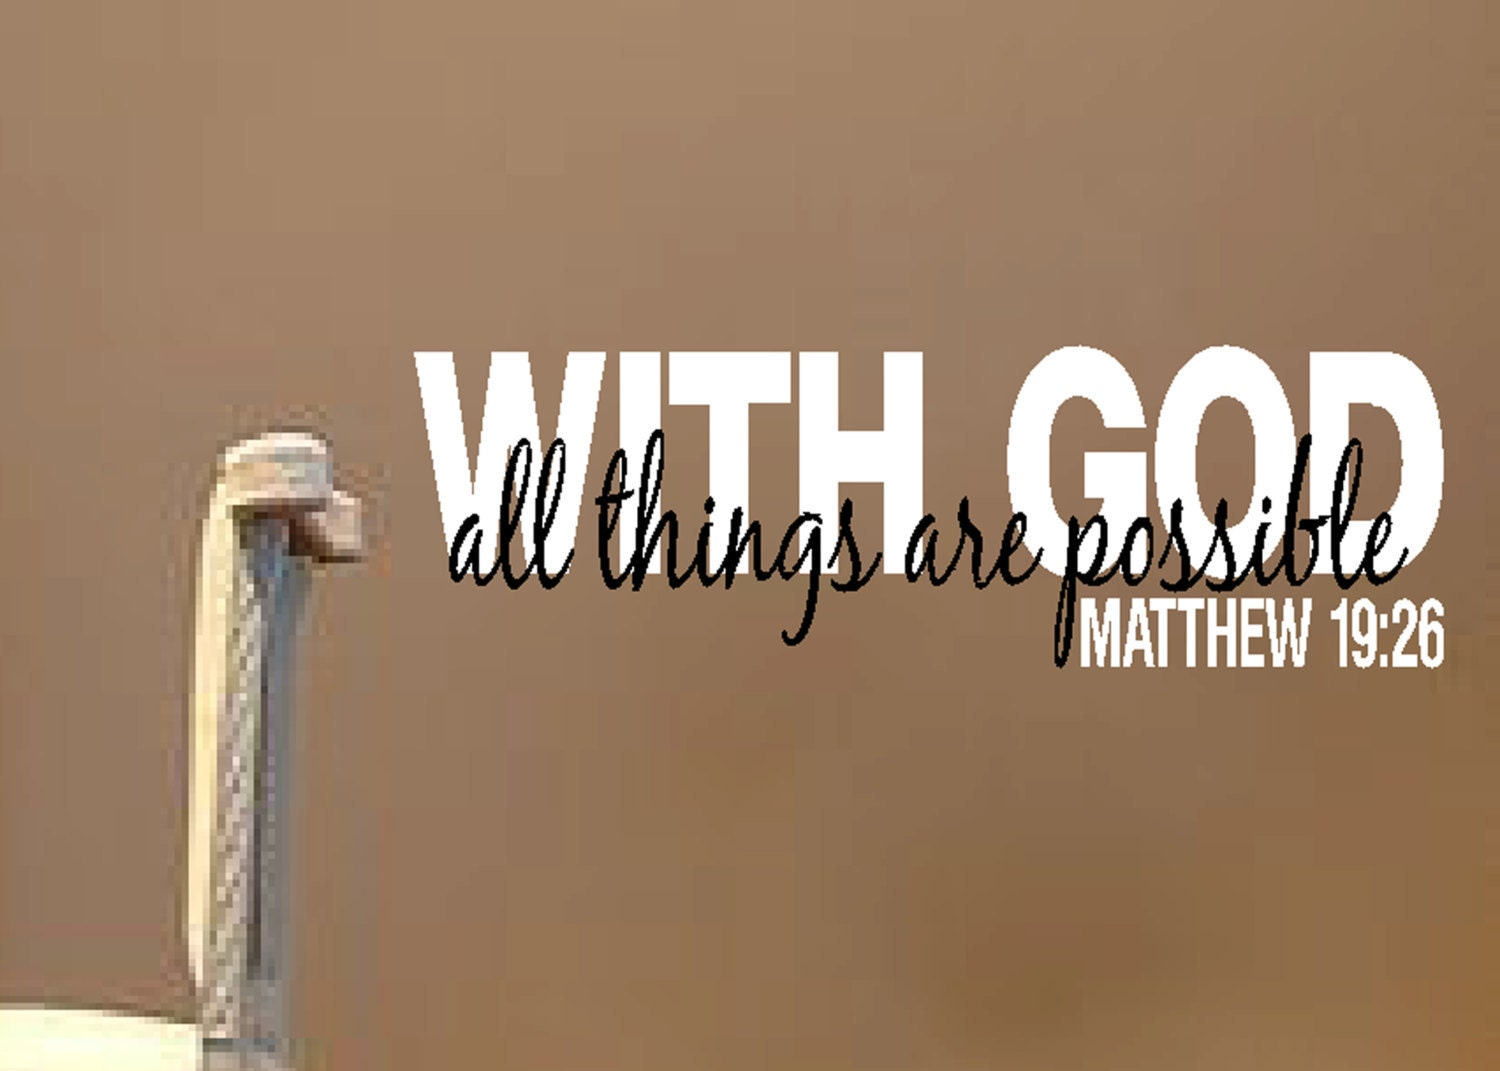 With god all things are possible matthew 1926 scripture wall zoom amipublicfo Image collections